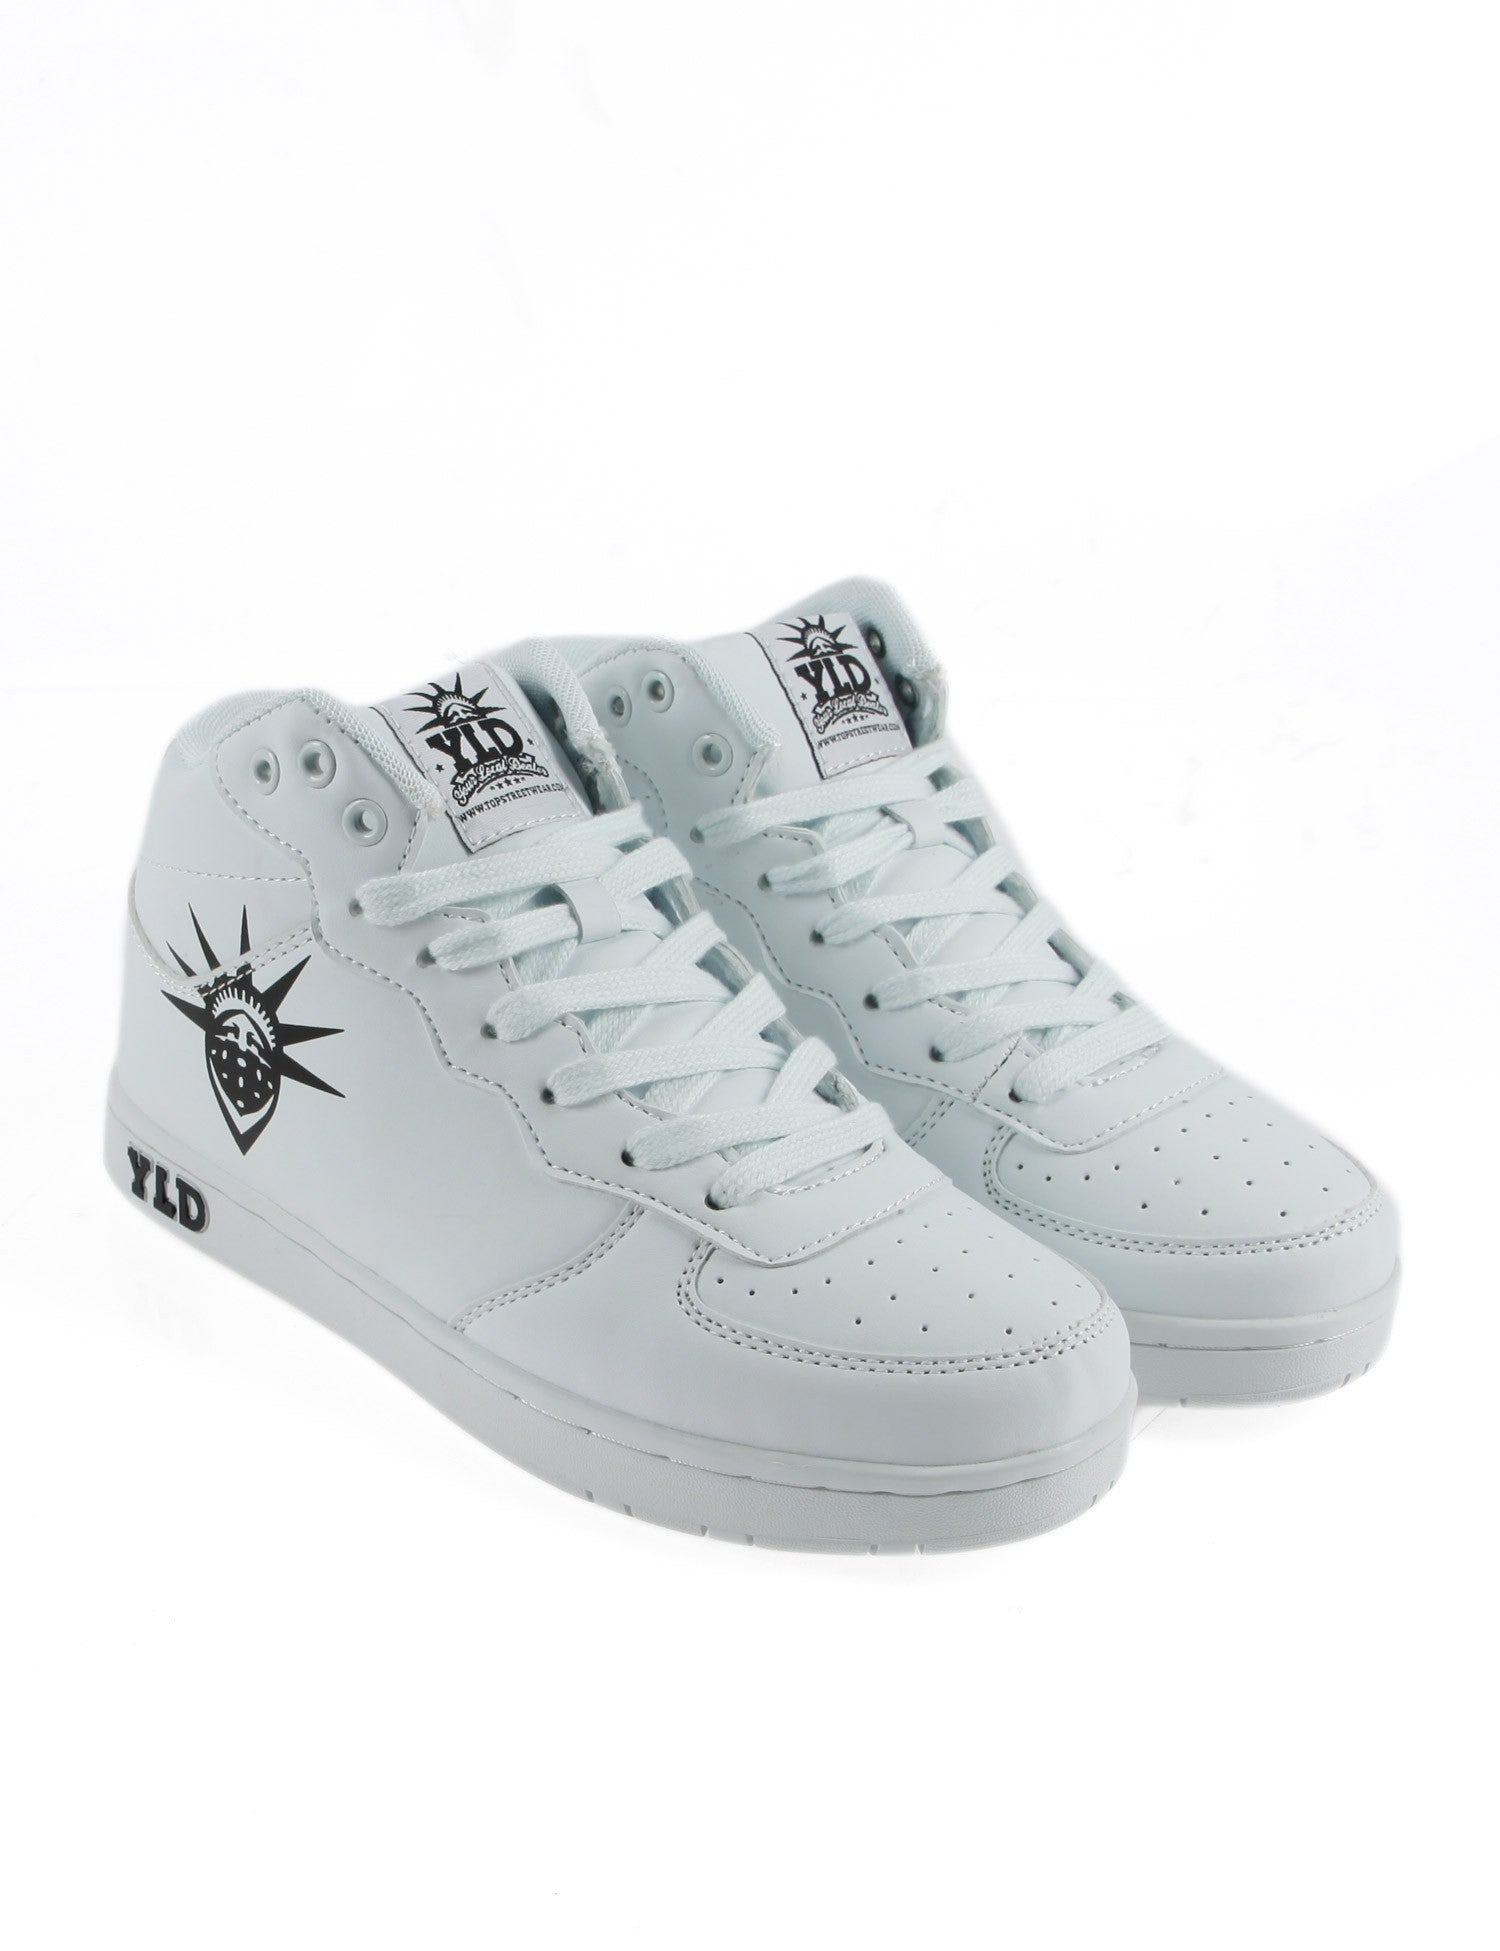 YLD Shoes G503D White